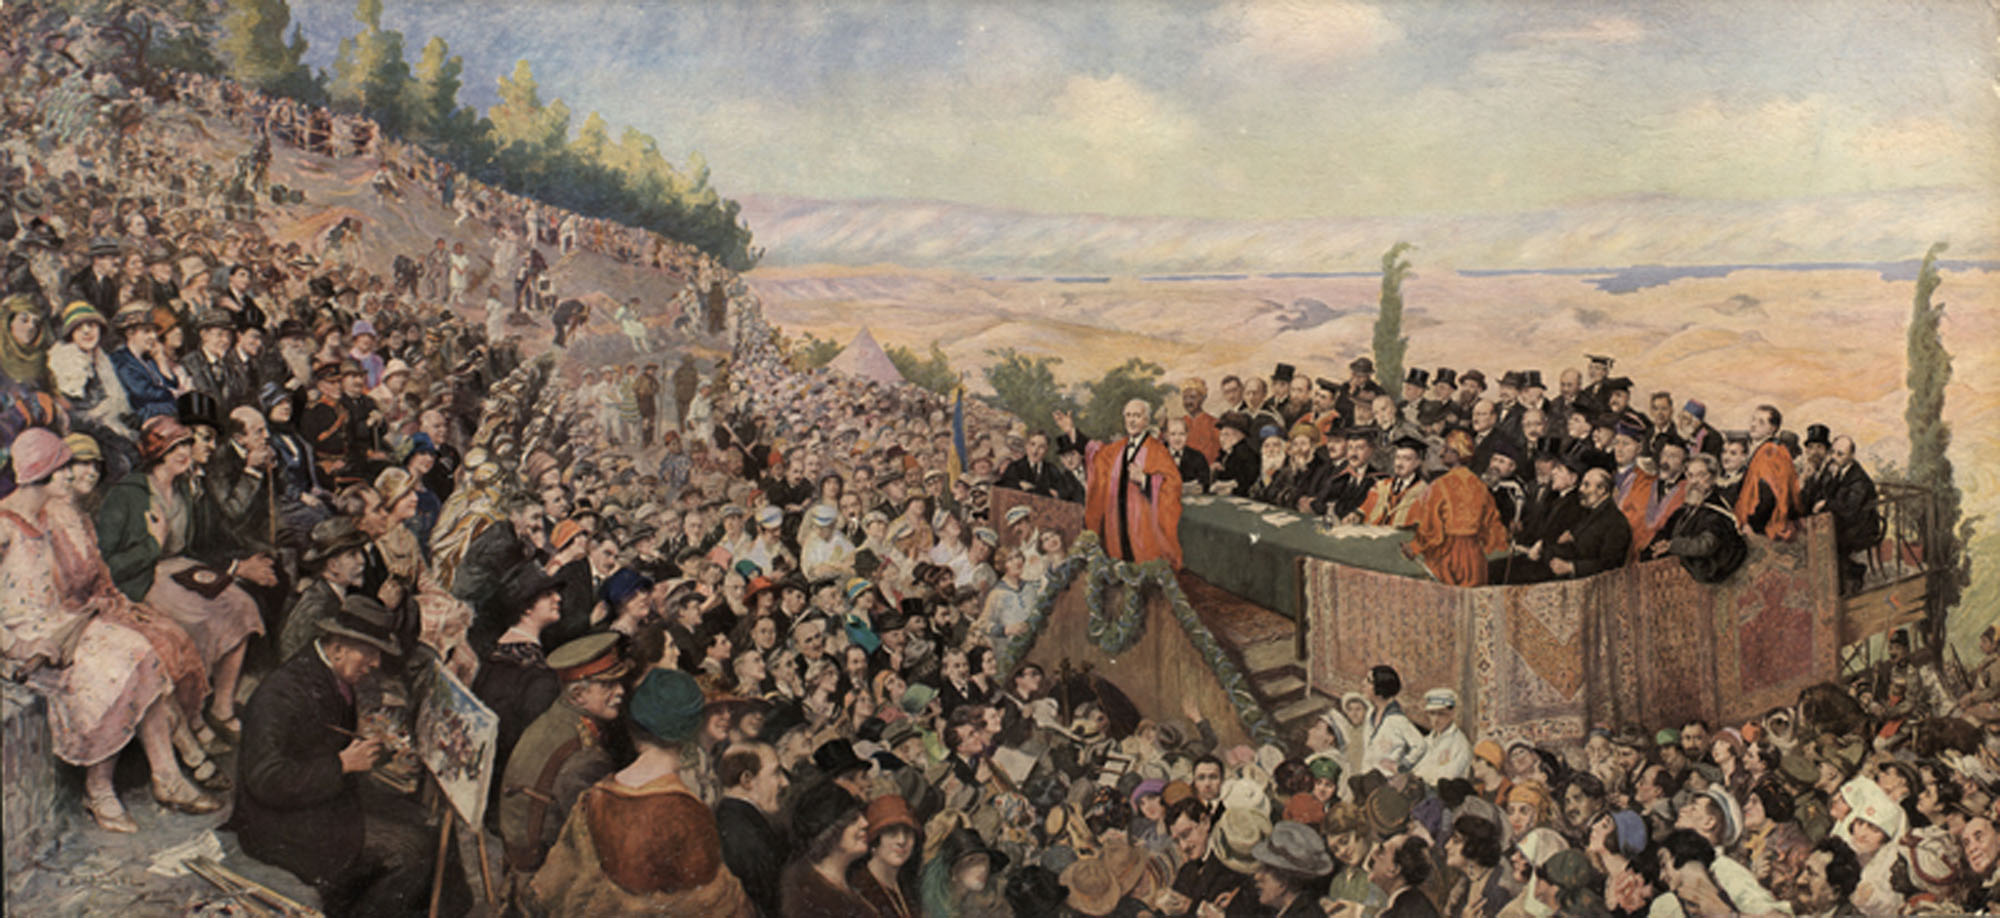 [The Opening of the Hebrew University in Jerusalem]